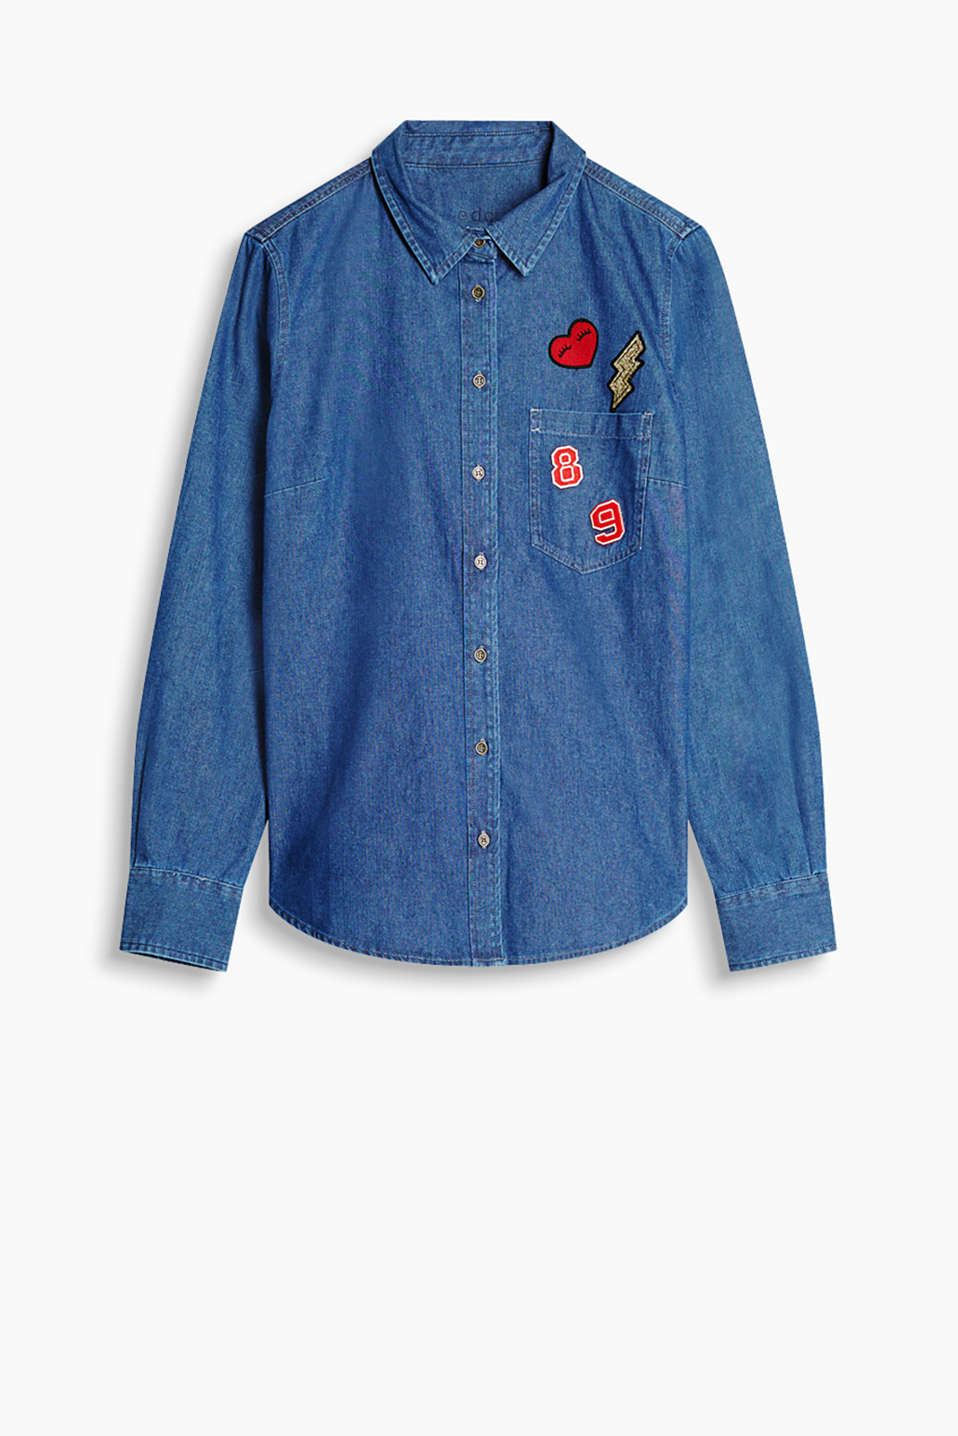 We love patches! Shirt blouse made of soft cotton denim in an unembellished, indigo wash